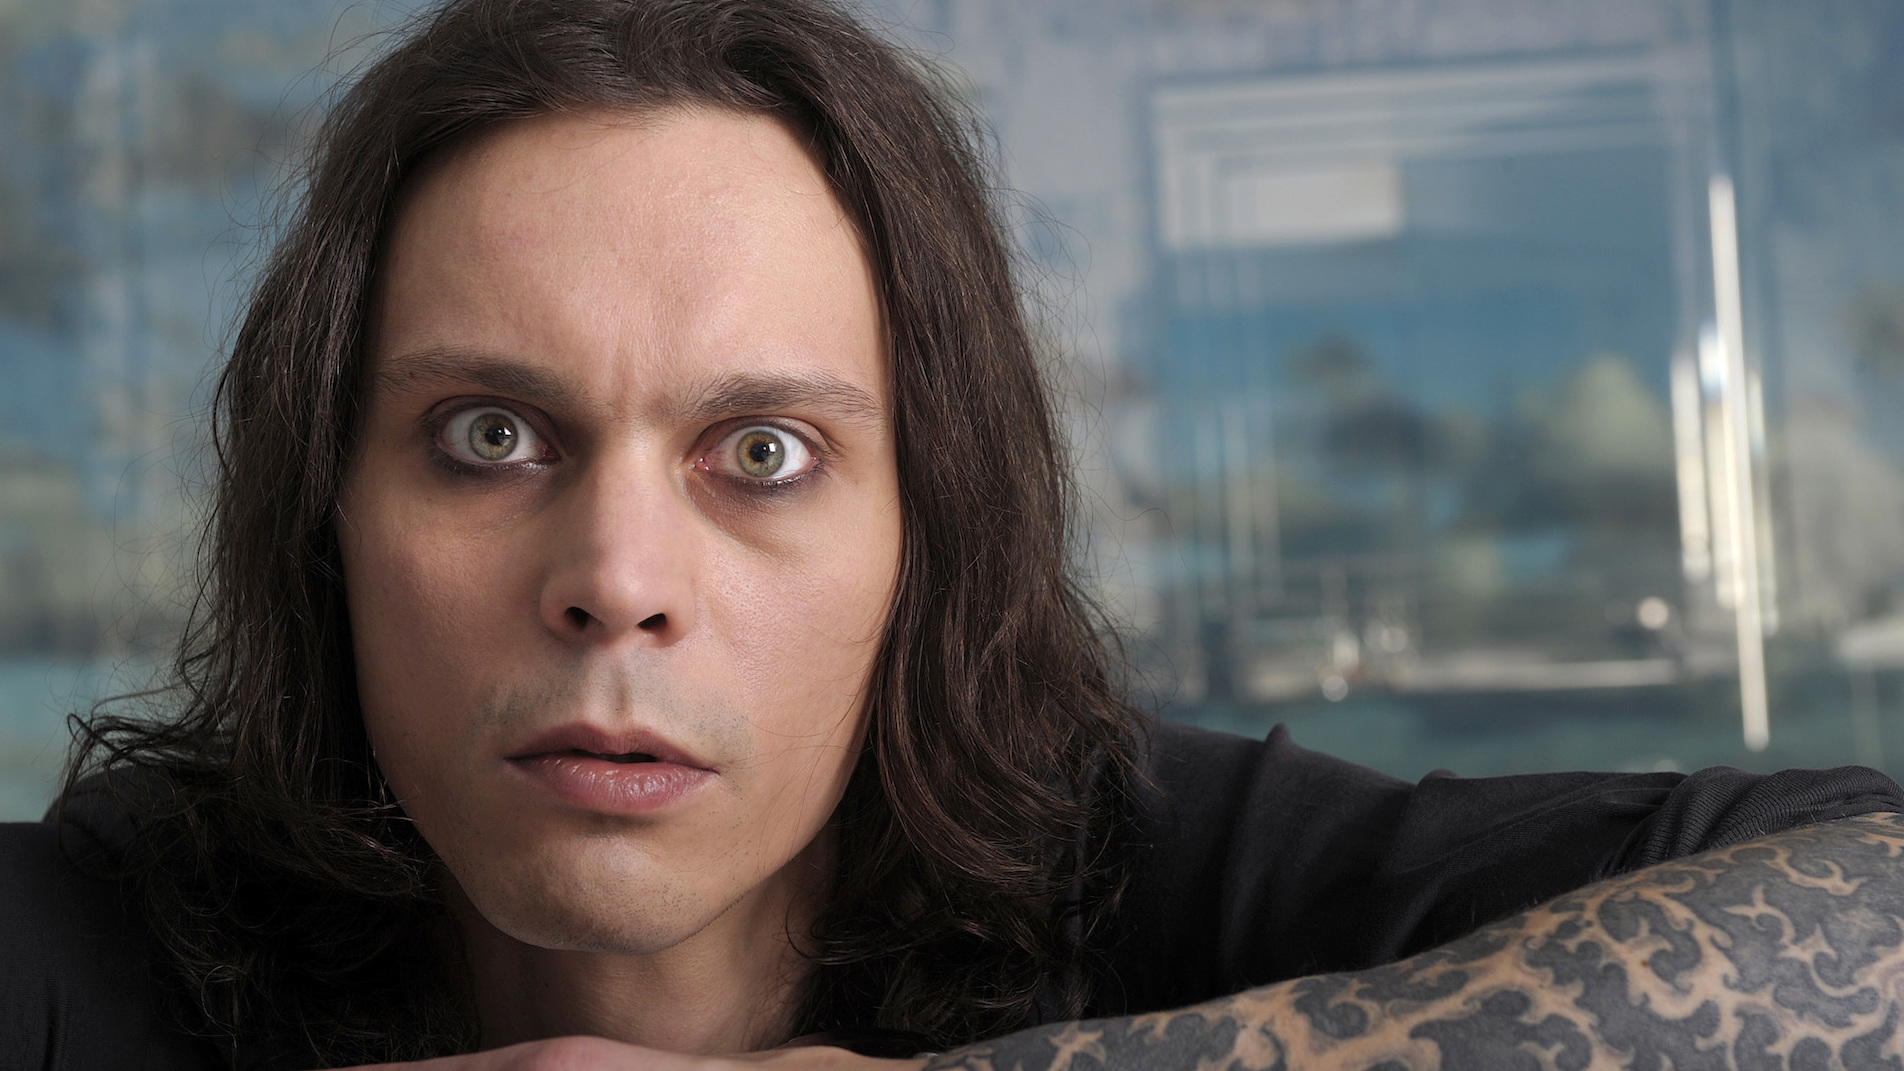 caaed12ef Why Ville Valo is obsessed with the dark side | Louder